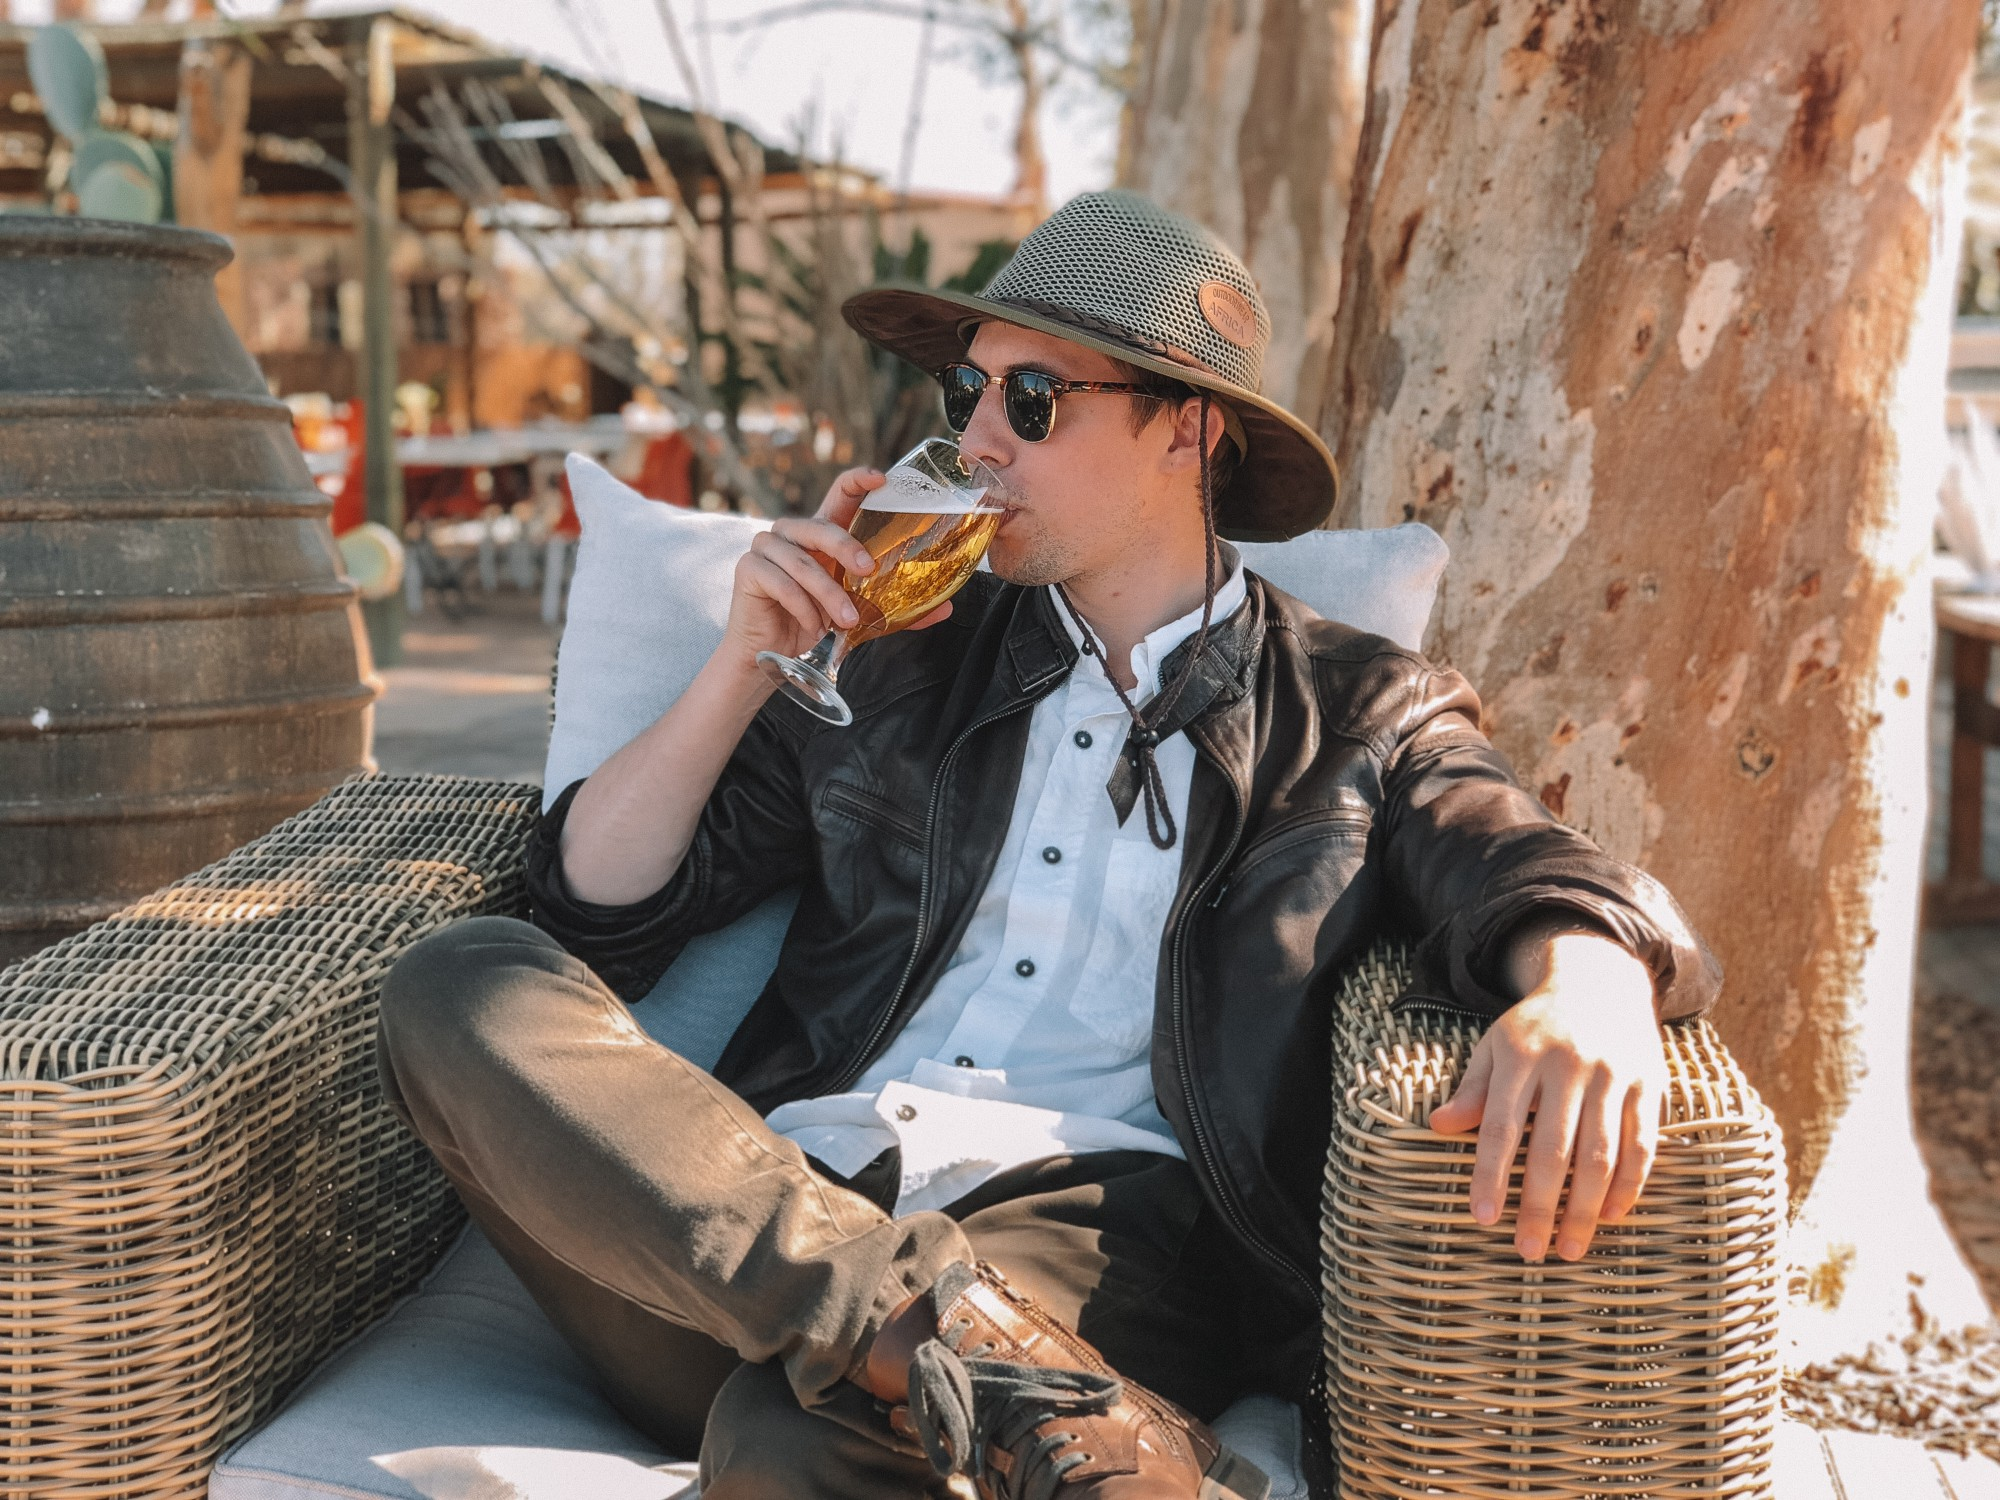 Man with a hat and shades sipping alcohol seated on a cane chair